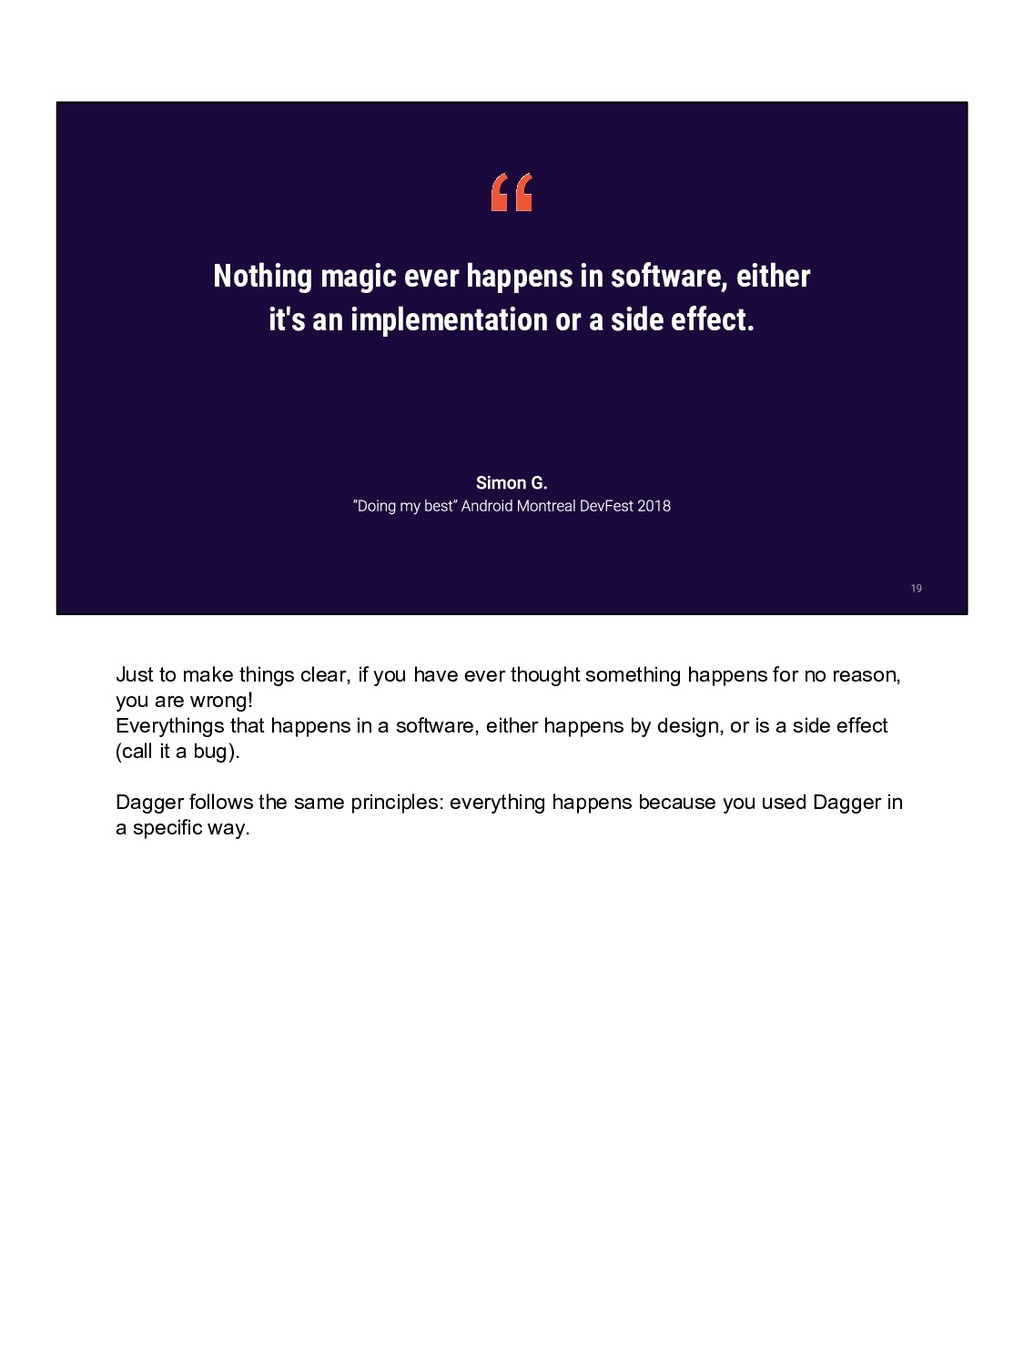 Nothing magic ever happens in software, either ...